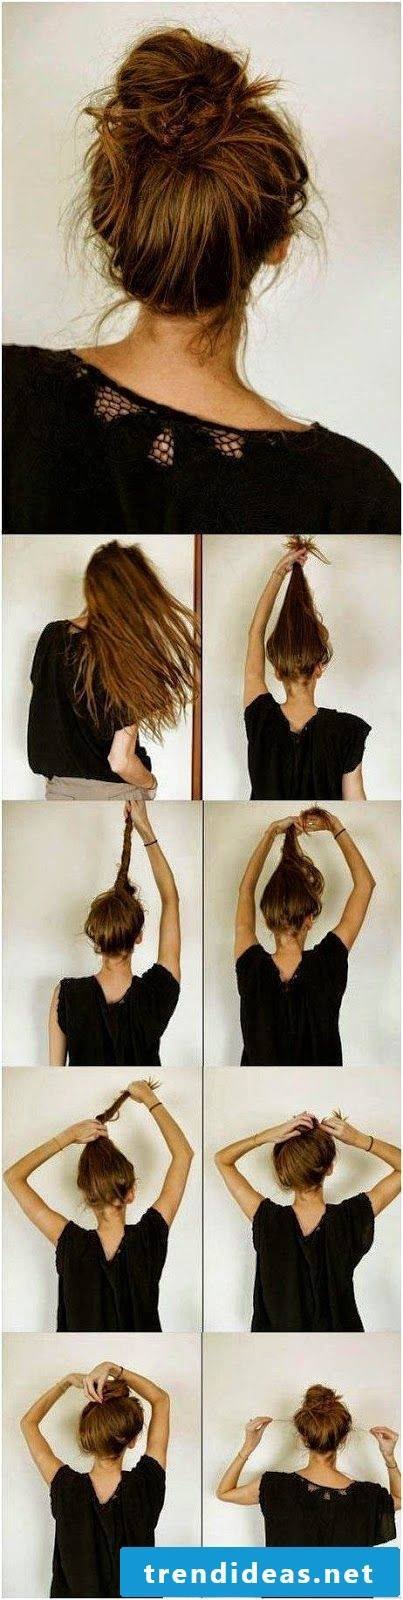 Updos Instructions for every day